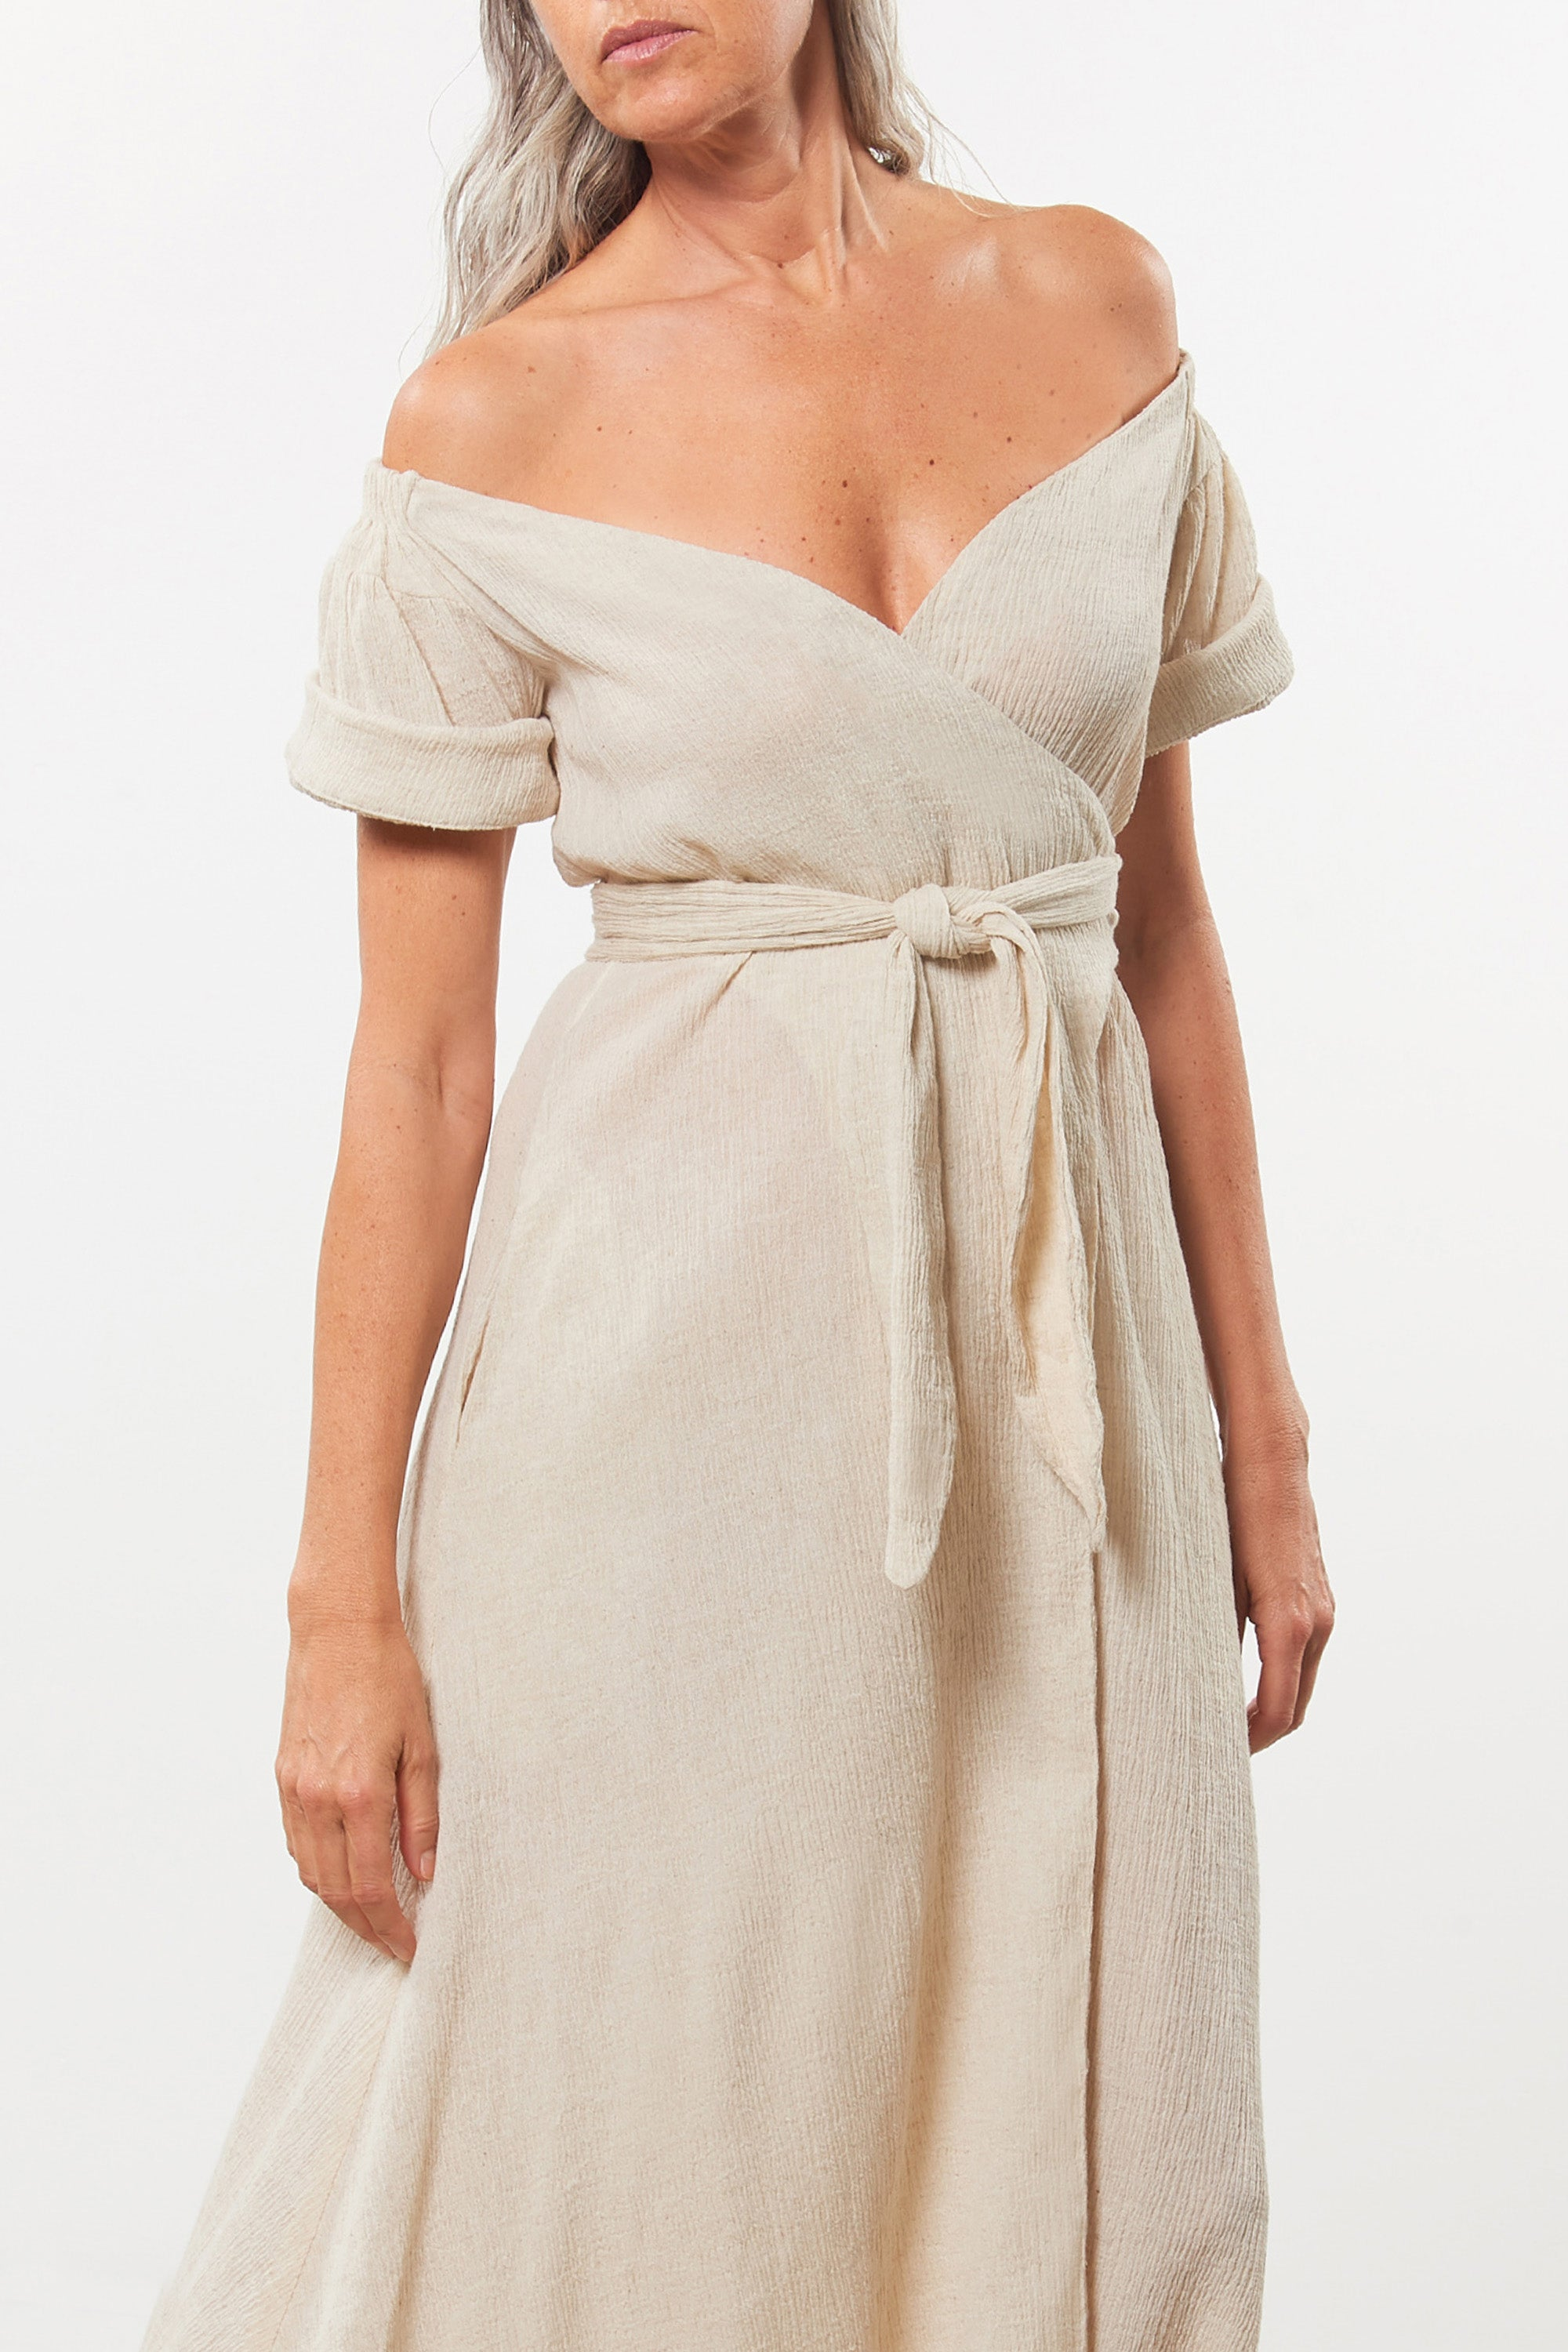 Mara Hoffman Beige Adelina Cover Up Dress in organic cotton and linen (neckline detail)